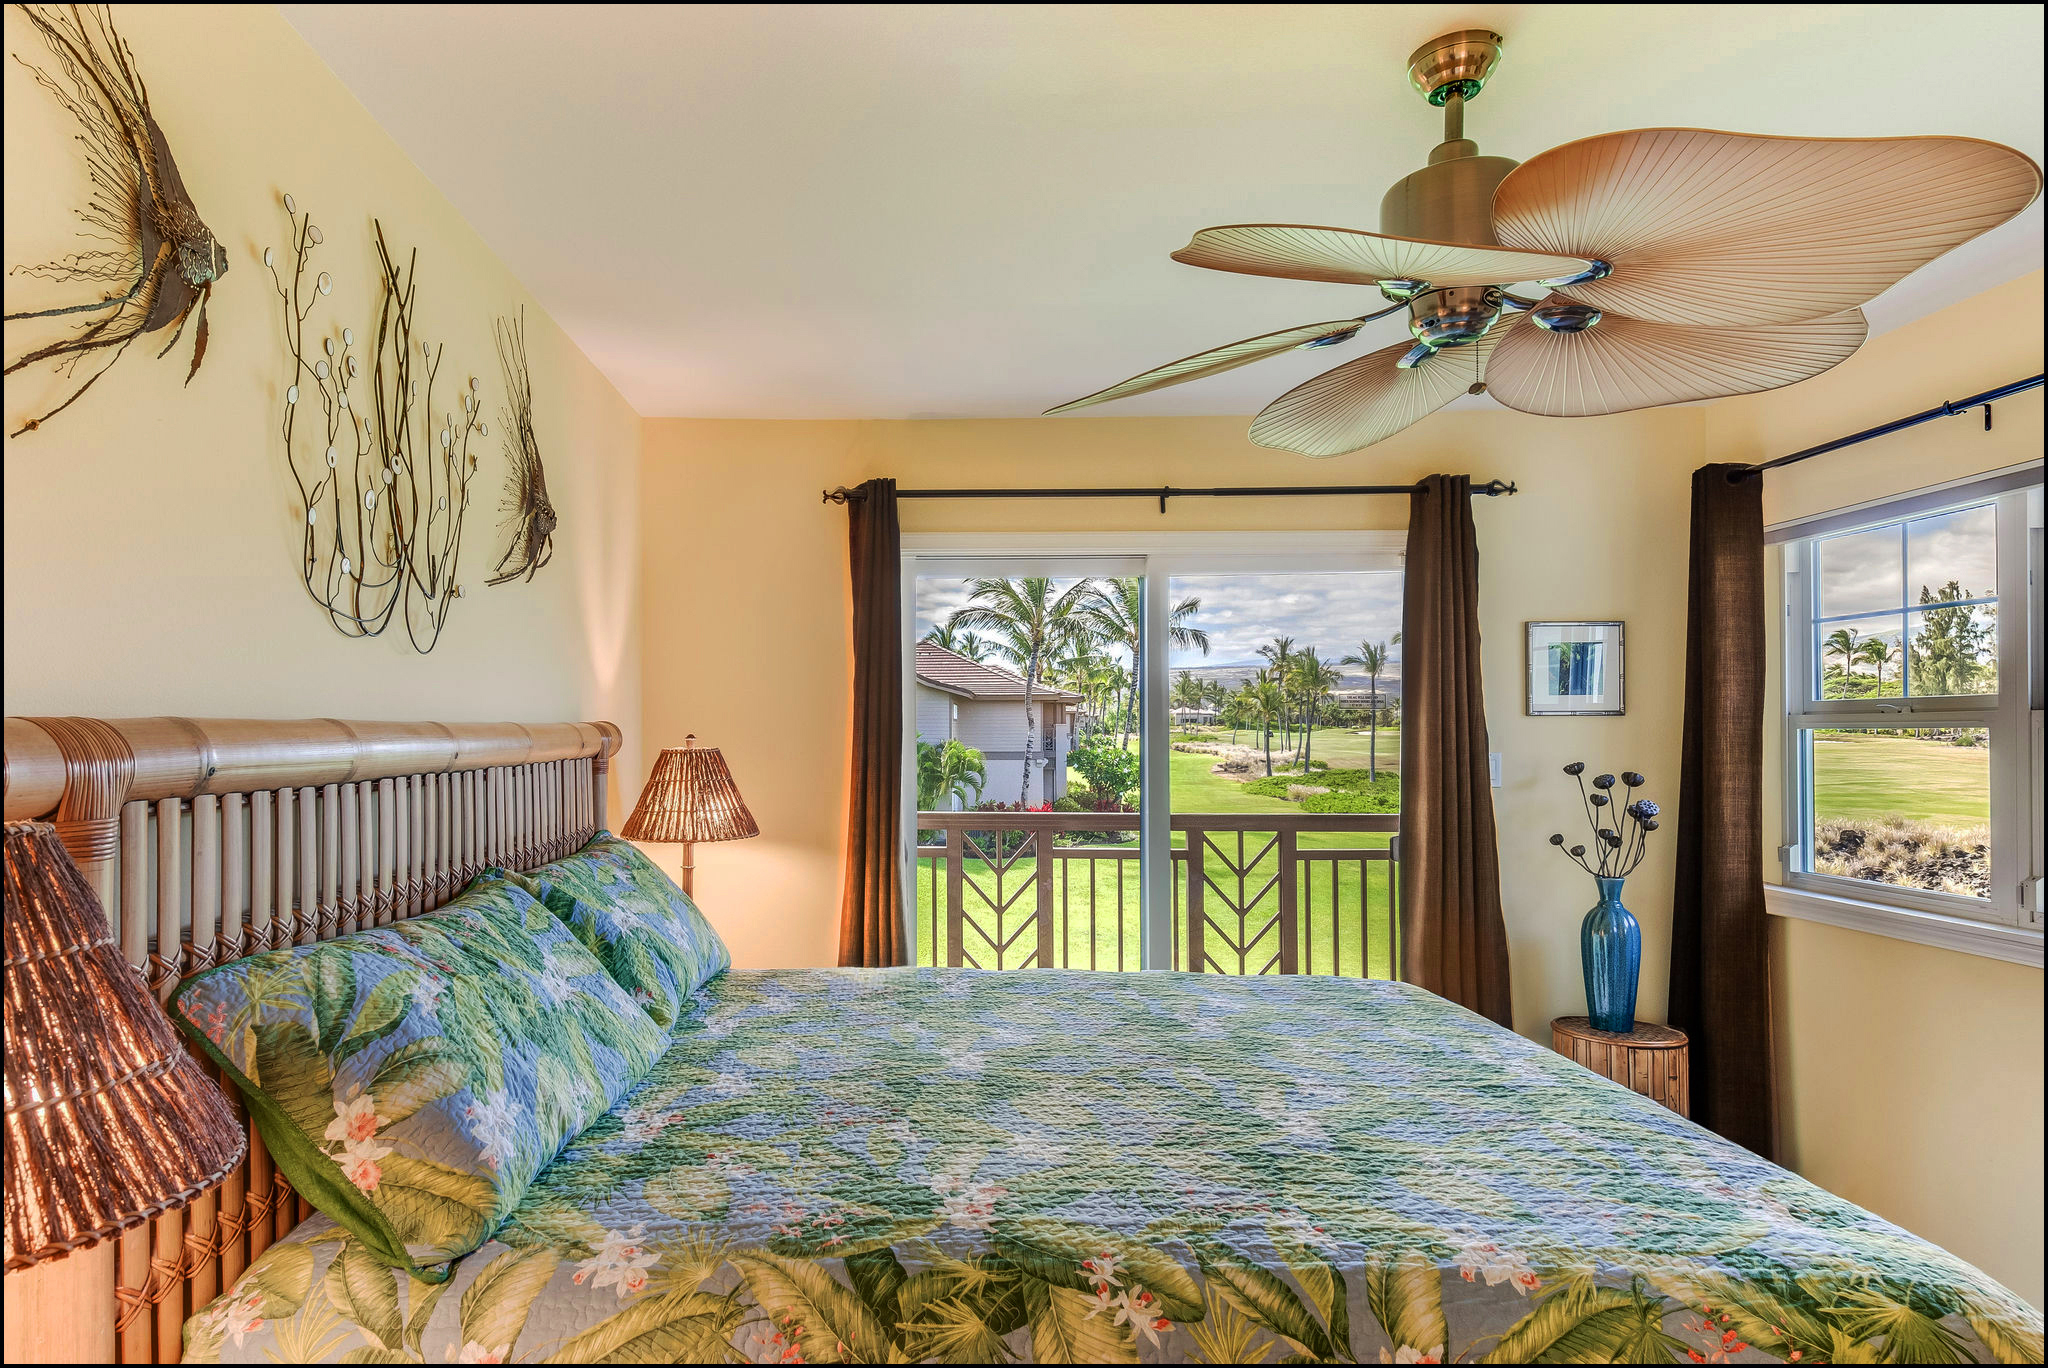 Private second floor master bedroom with big green views furnished with handsome bamboo furniture, a ceiling fan and a small lanai